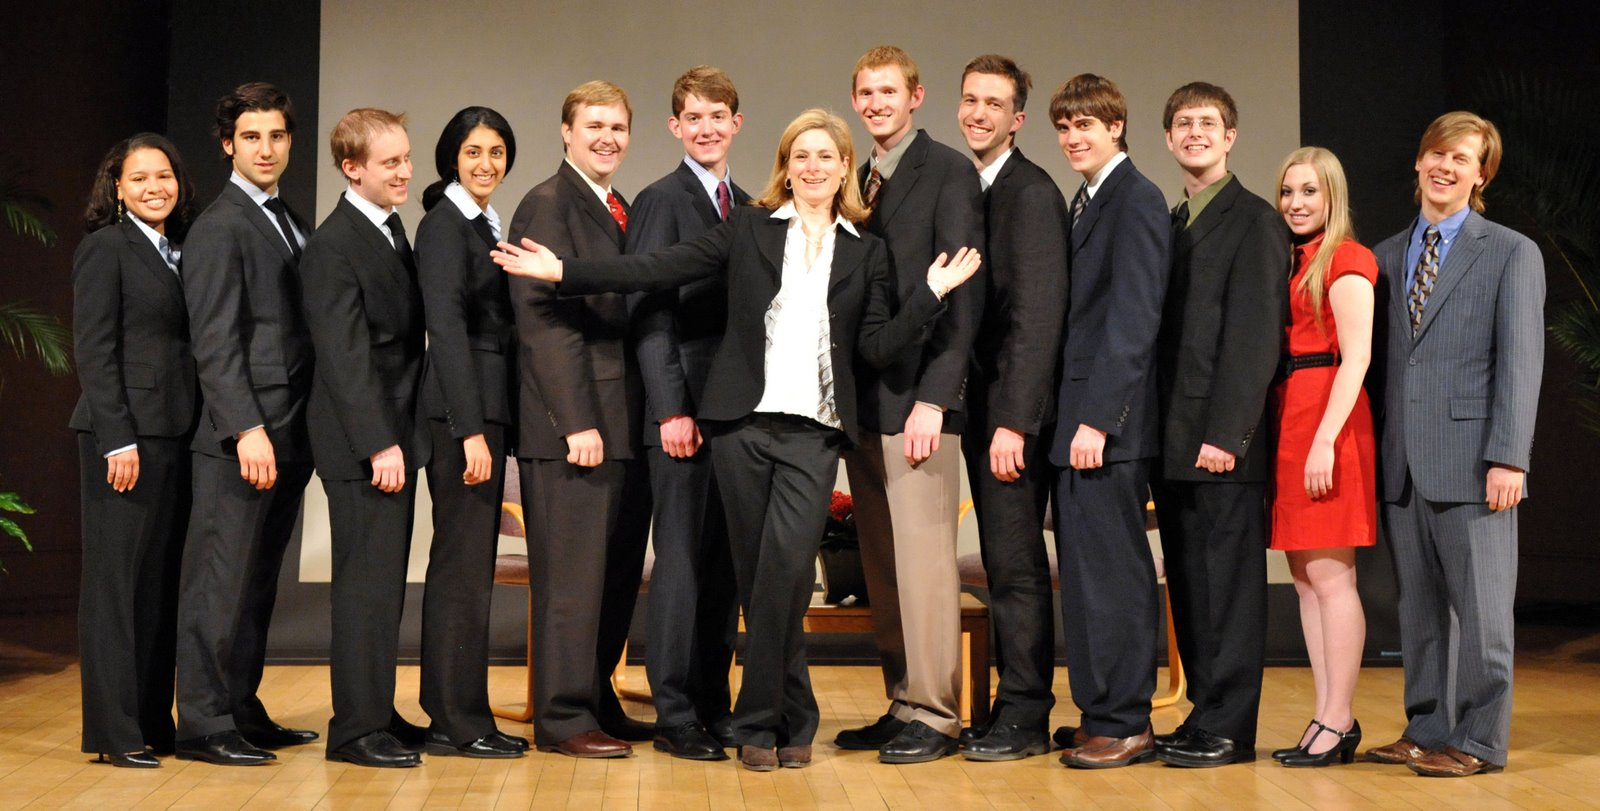 Lisa Randall with the Legacy Winners from 2008 and 2009, as well as several Junto members